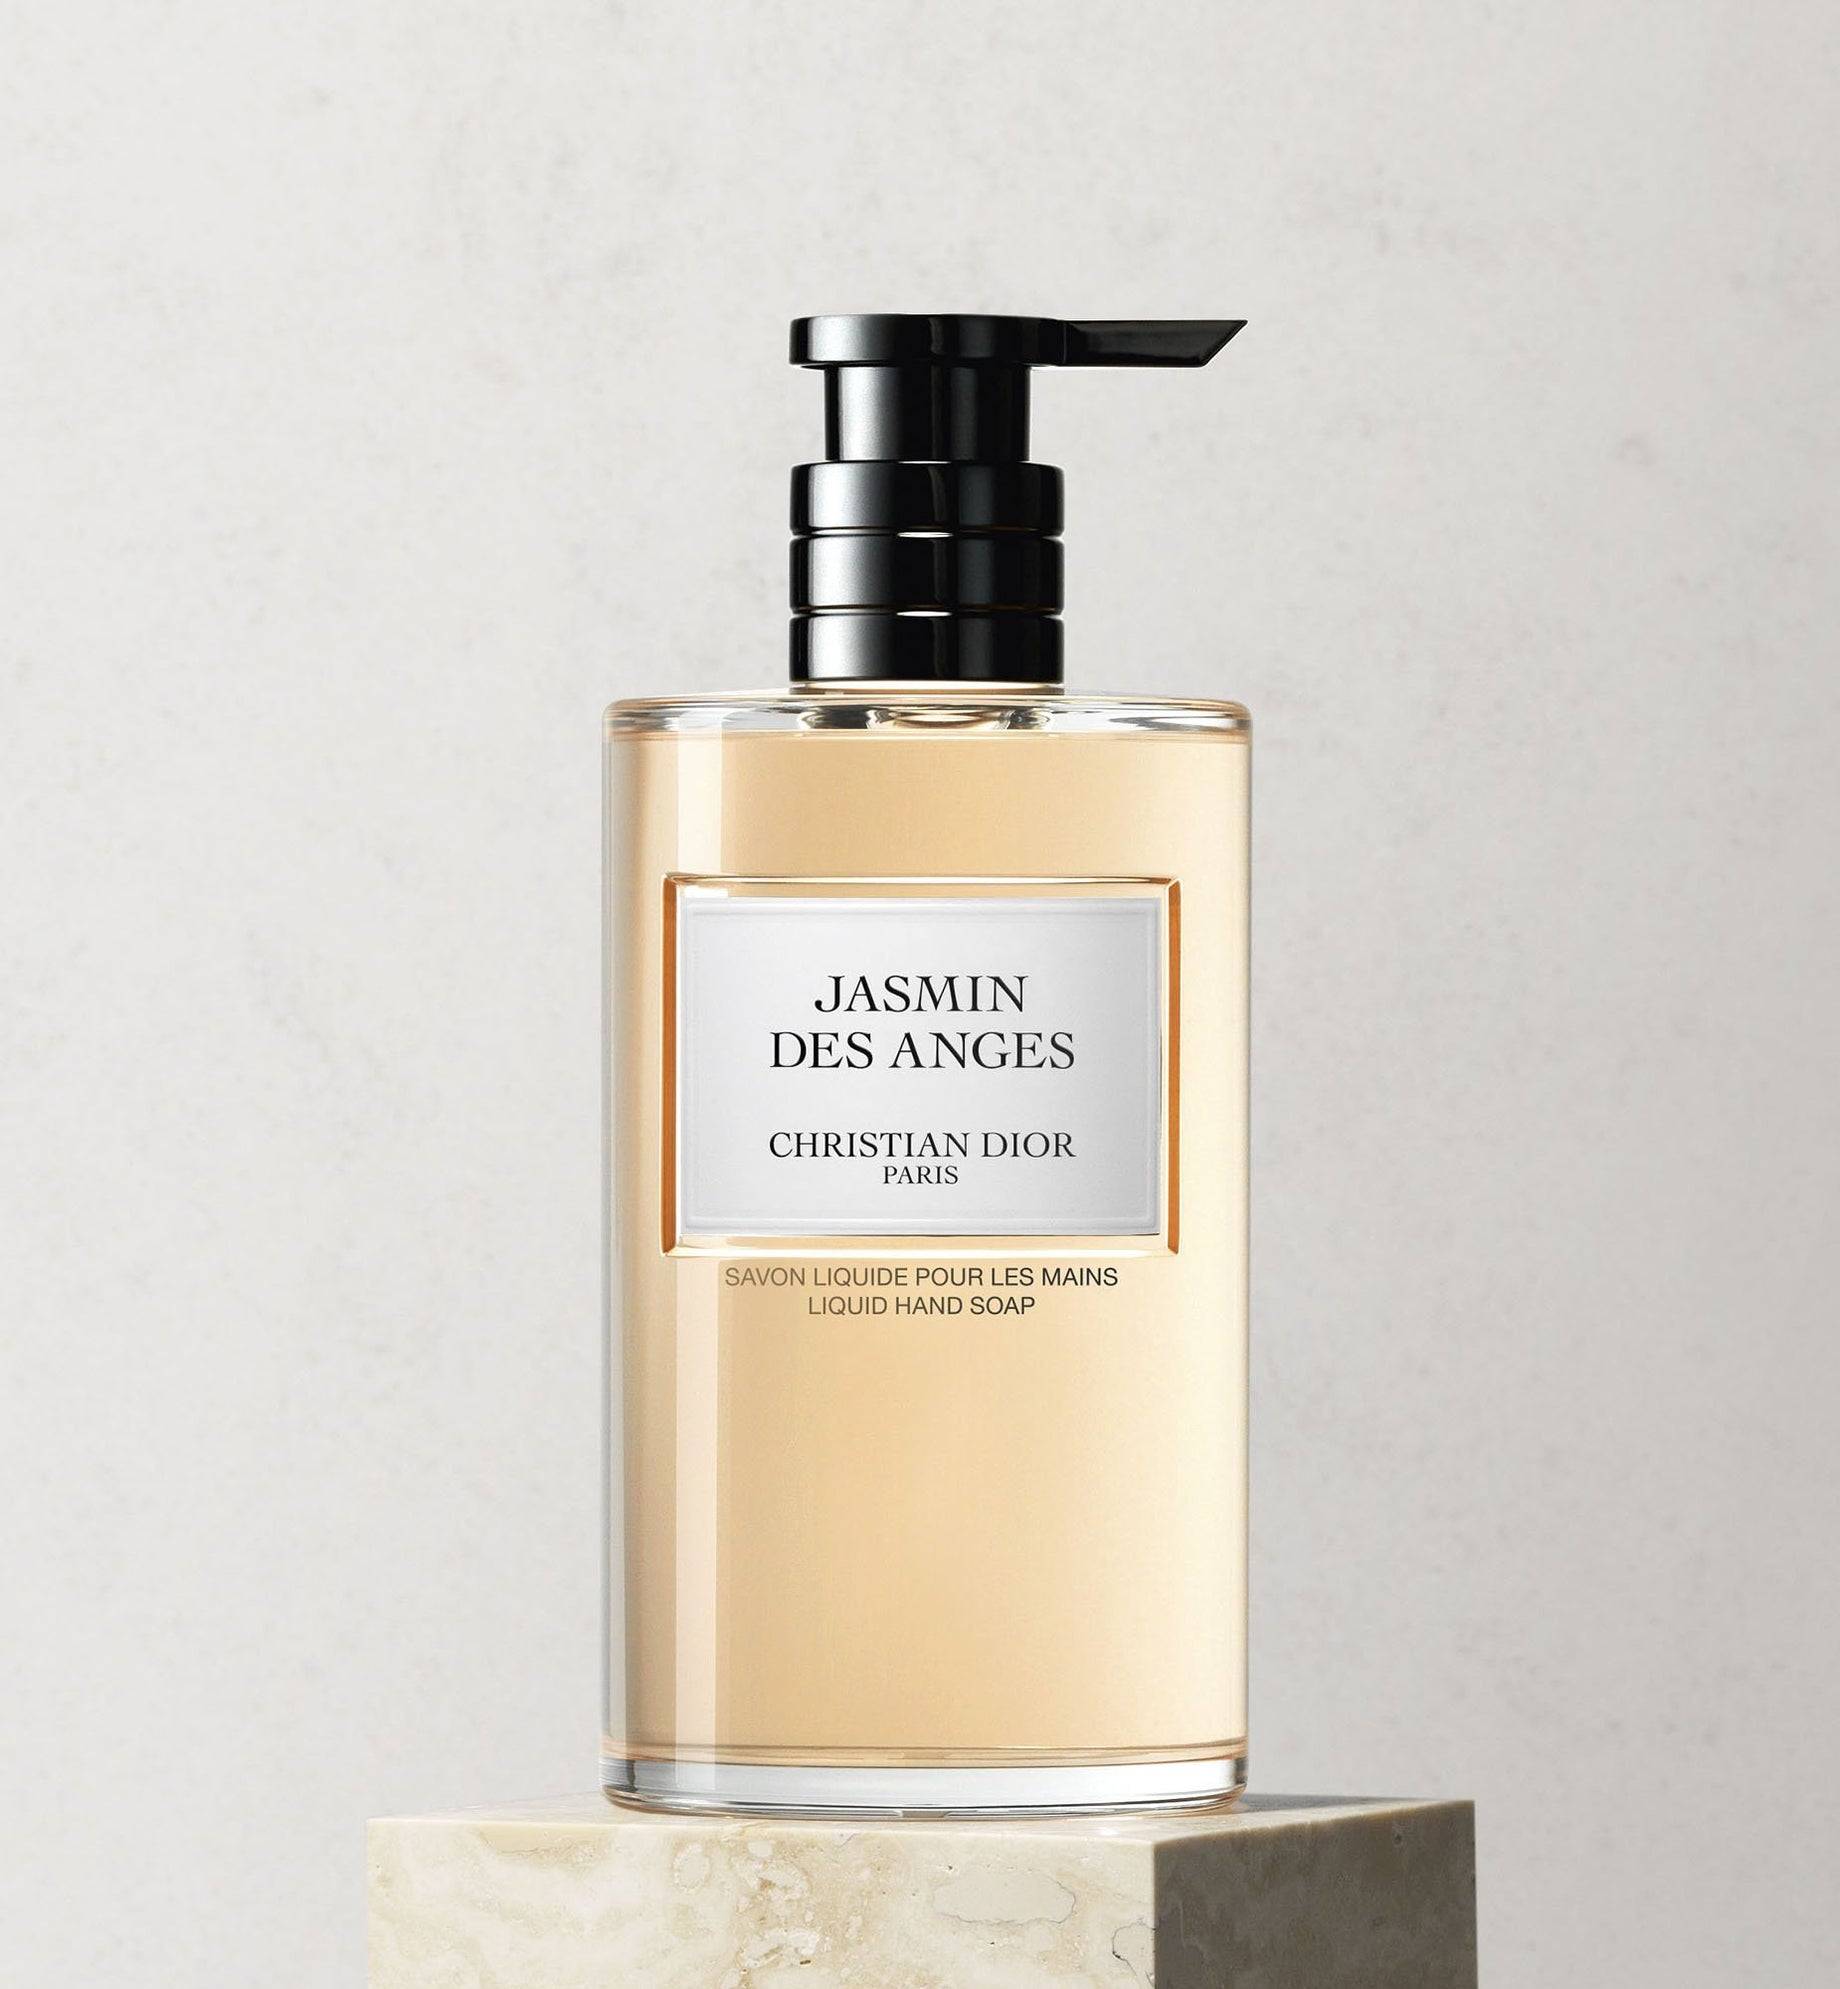 JASMIN DES ANGES LIQUID HAND SOAP